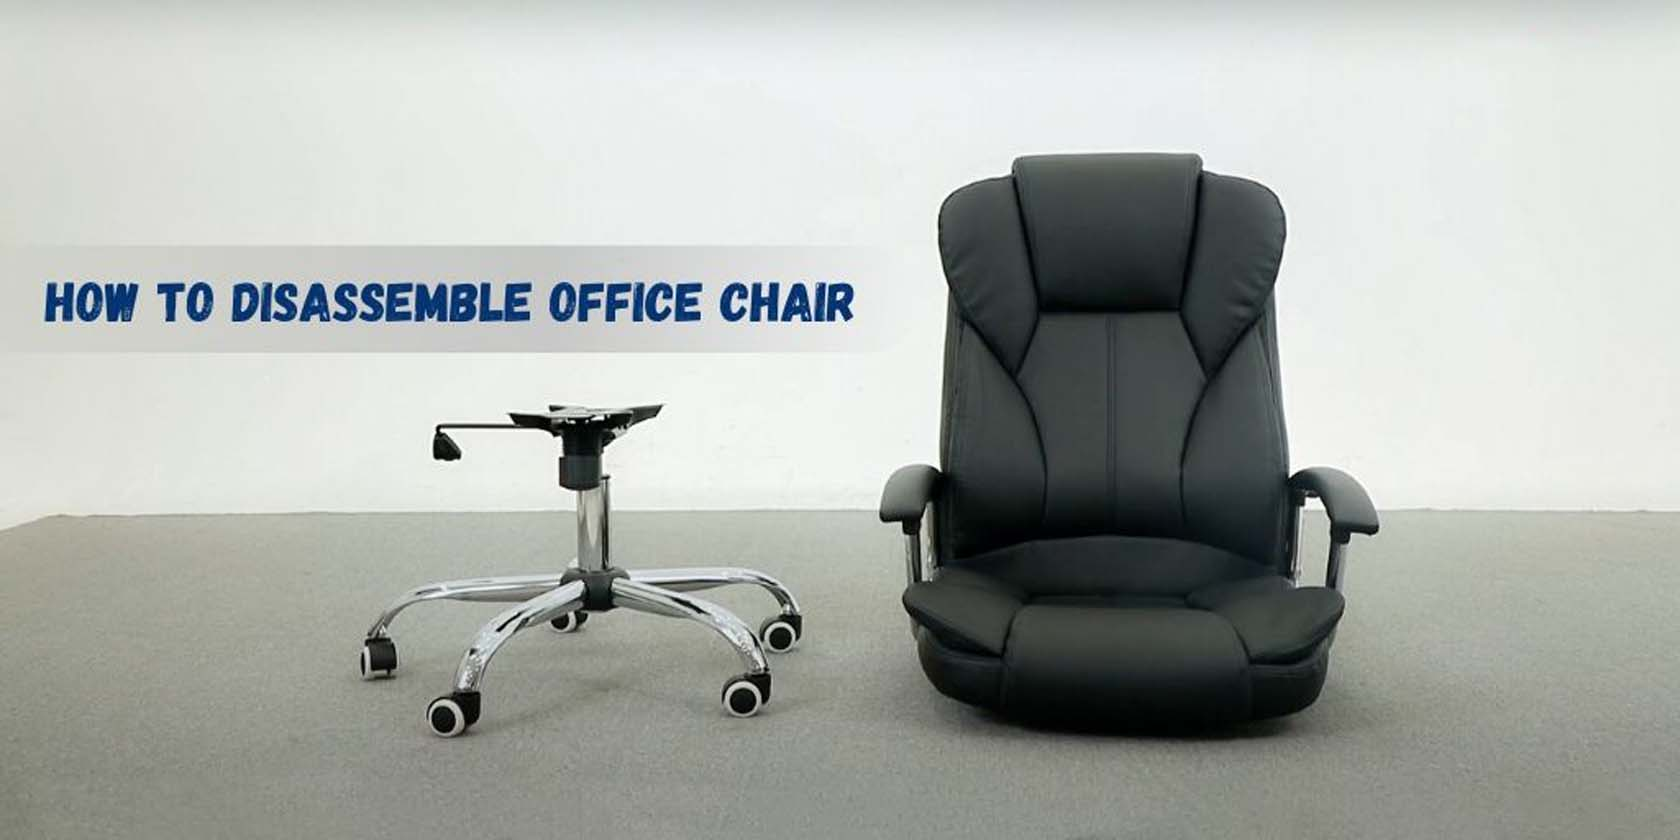 How To Disassemble An Office Chair